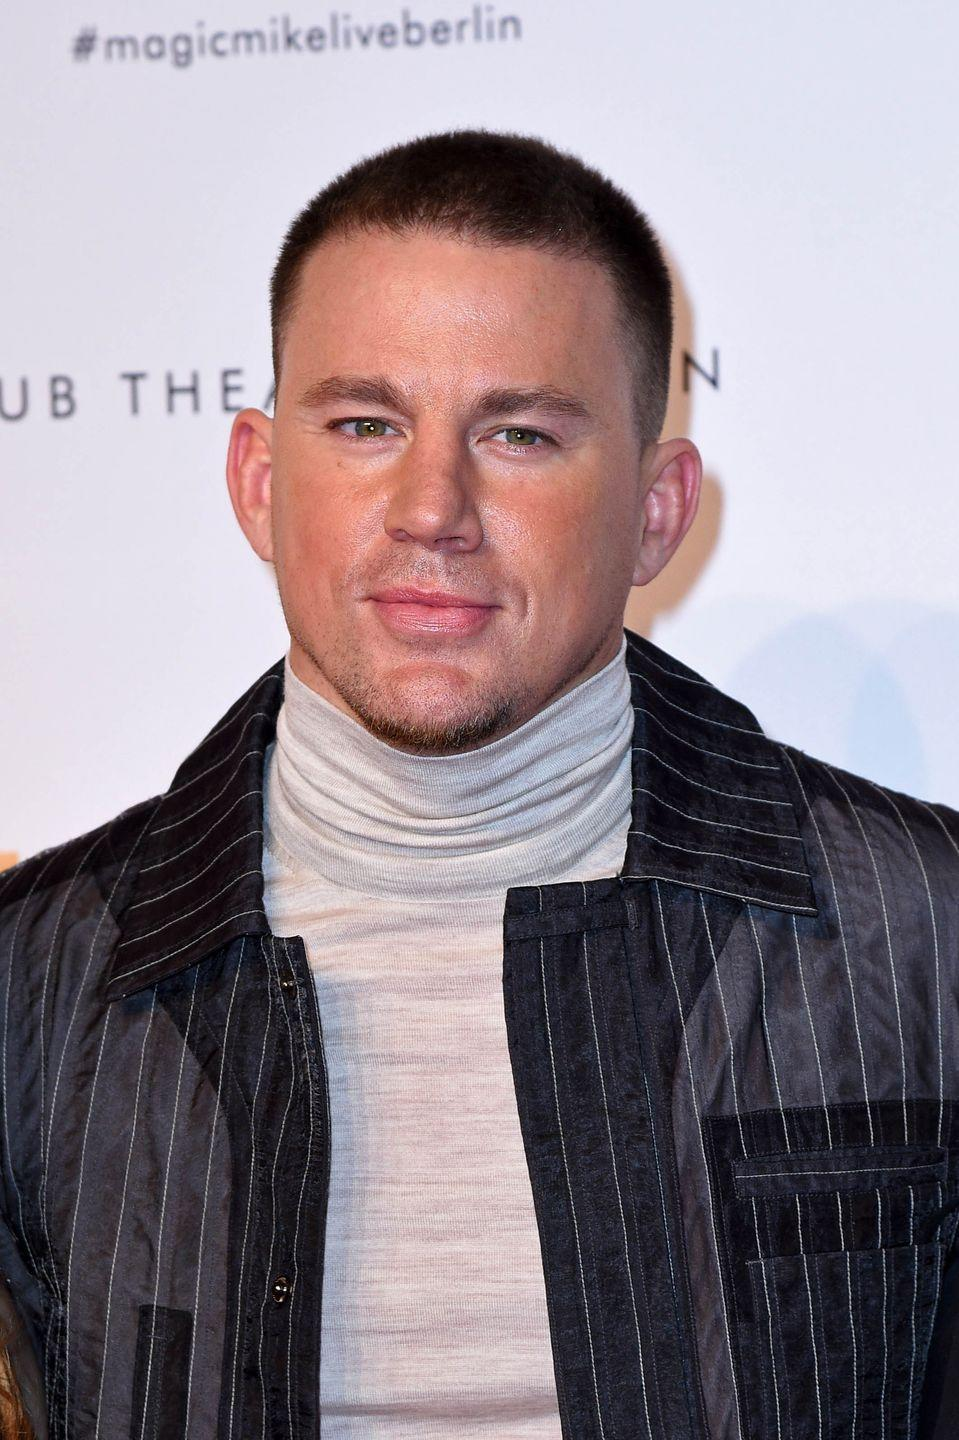 <p>Now 39, the age-defying actor has taken some time away from the camera. His last on-screen roles, <em>Logan Lucky</em> and <em>Kingsman: The Golden Circle</em>, were both released in 2017. Luckily for his fans, the hiatus is not expected to last much longer as the actor is set to star in a slew of movies due for release in 2021.</p>